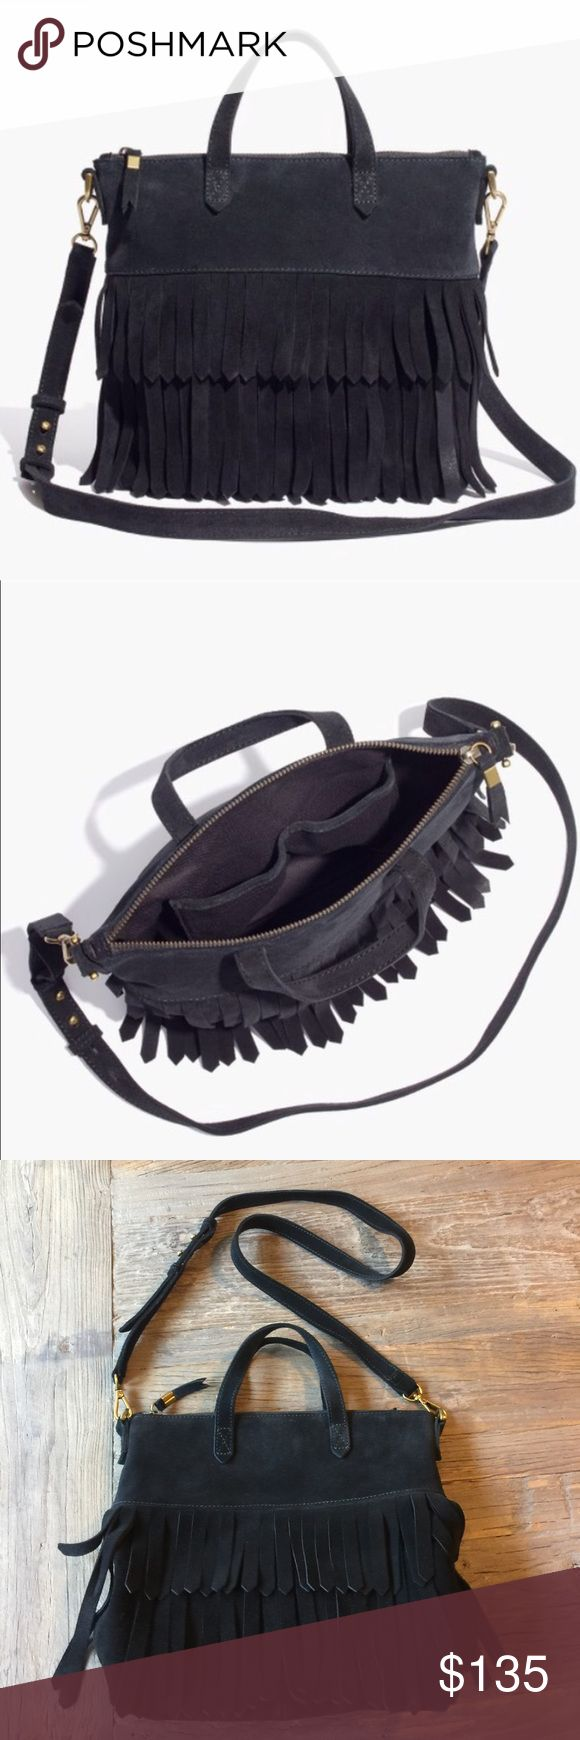 """MADEWELL black suede fringe mini transport tote GENTLY USED CONDITION -great condition with a few signs of wear. Inside is clean with no damage or stains. Smoke free home. Bottom of bag has water marks from where I accidentally sat the bag in water -this is not visible when using the bag. Fully lined. Can be worn cross body or strap can be removed and used as a tote. 2 slip pockets on inside. 19 7/10"""" shoulder strap drop. 9 7/8"""" H x 10 1/4"""" W x 3 1/2"""" D.  ❌no trades Paypal or modeling…"""